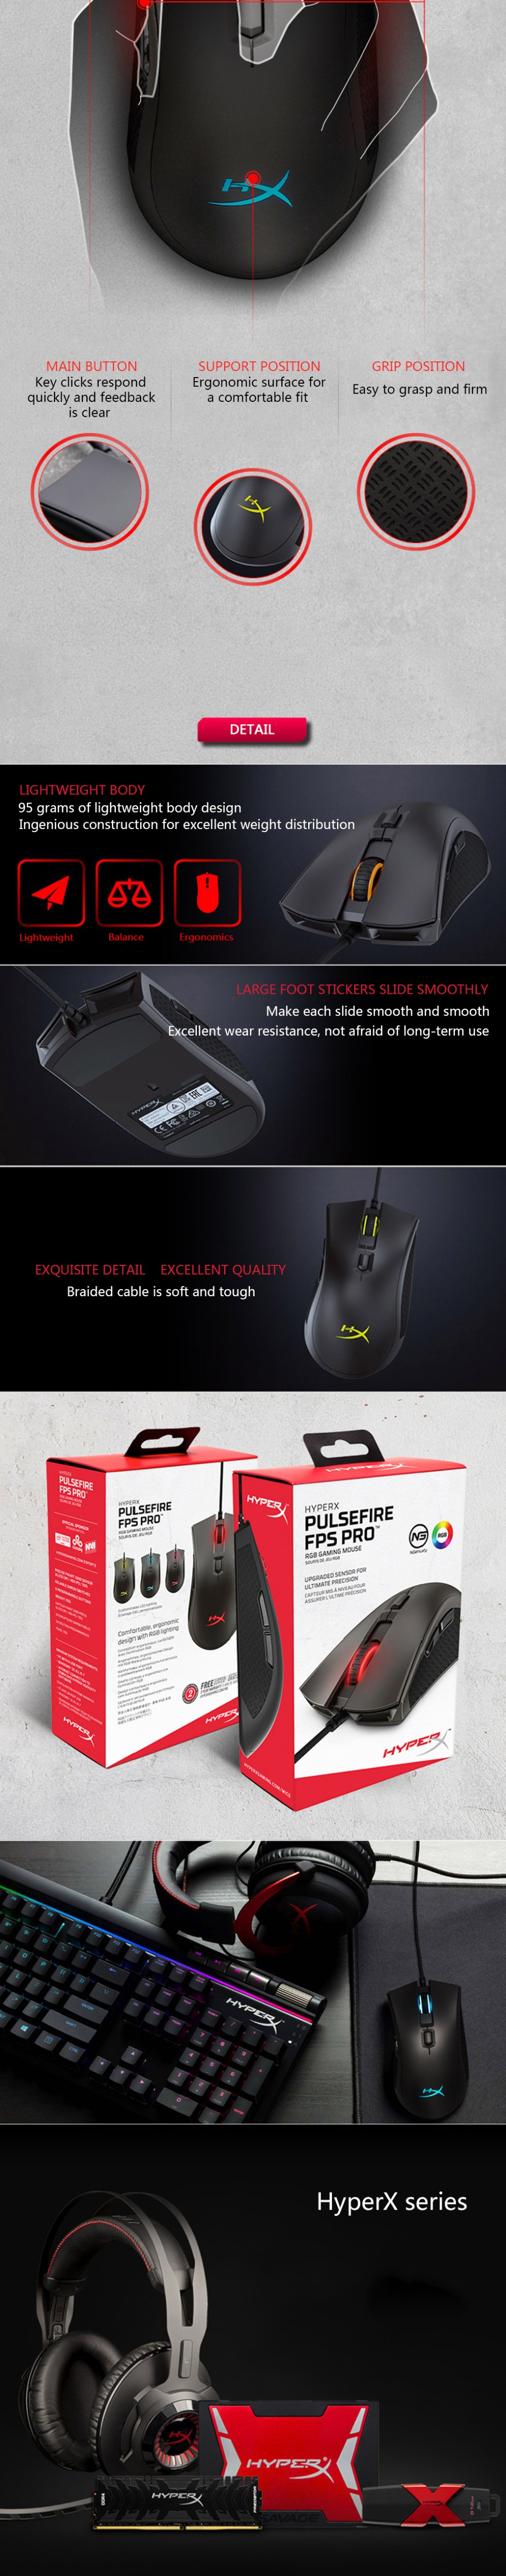 Kingston 3389 sensor wired mouse HyperX Pulsefire FPS Pro RGB Gaming Mouse with native DPI up to 16000 Pixart E-sports mouse 7